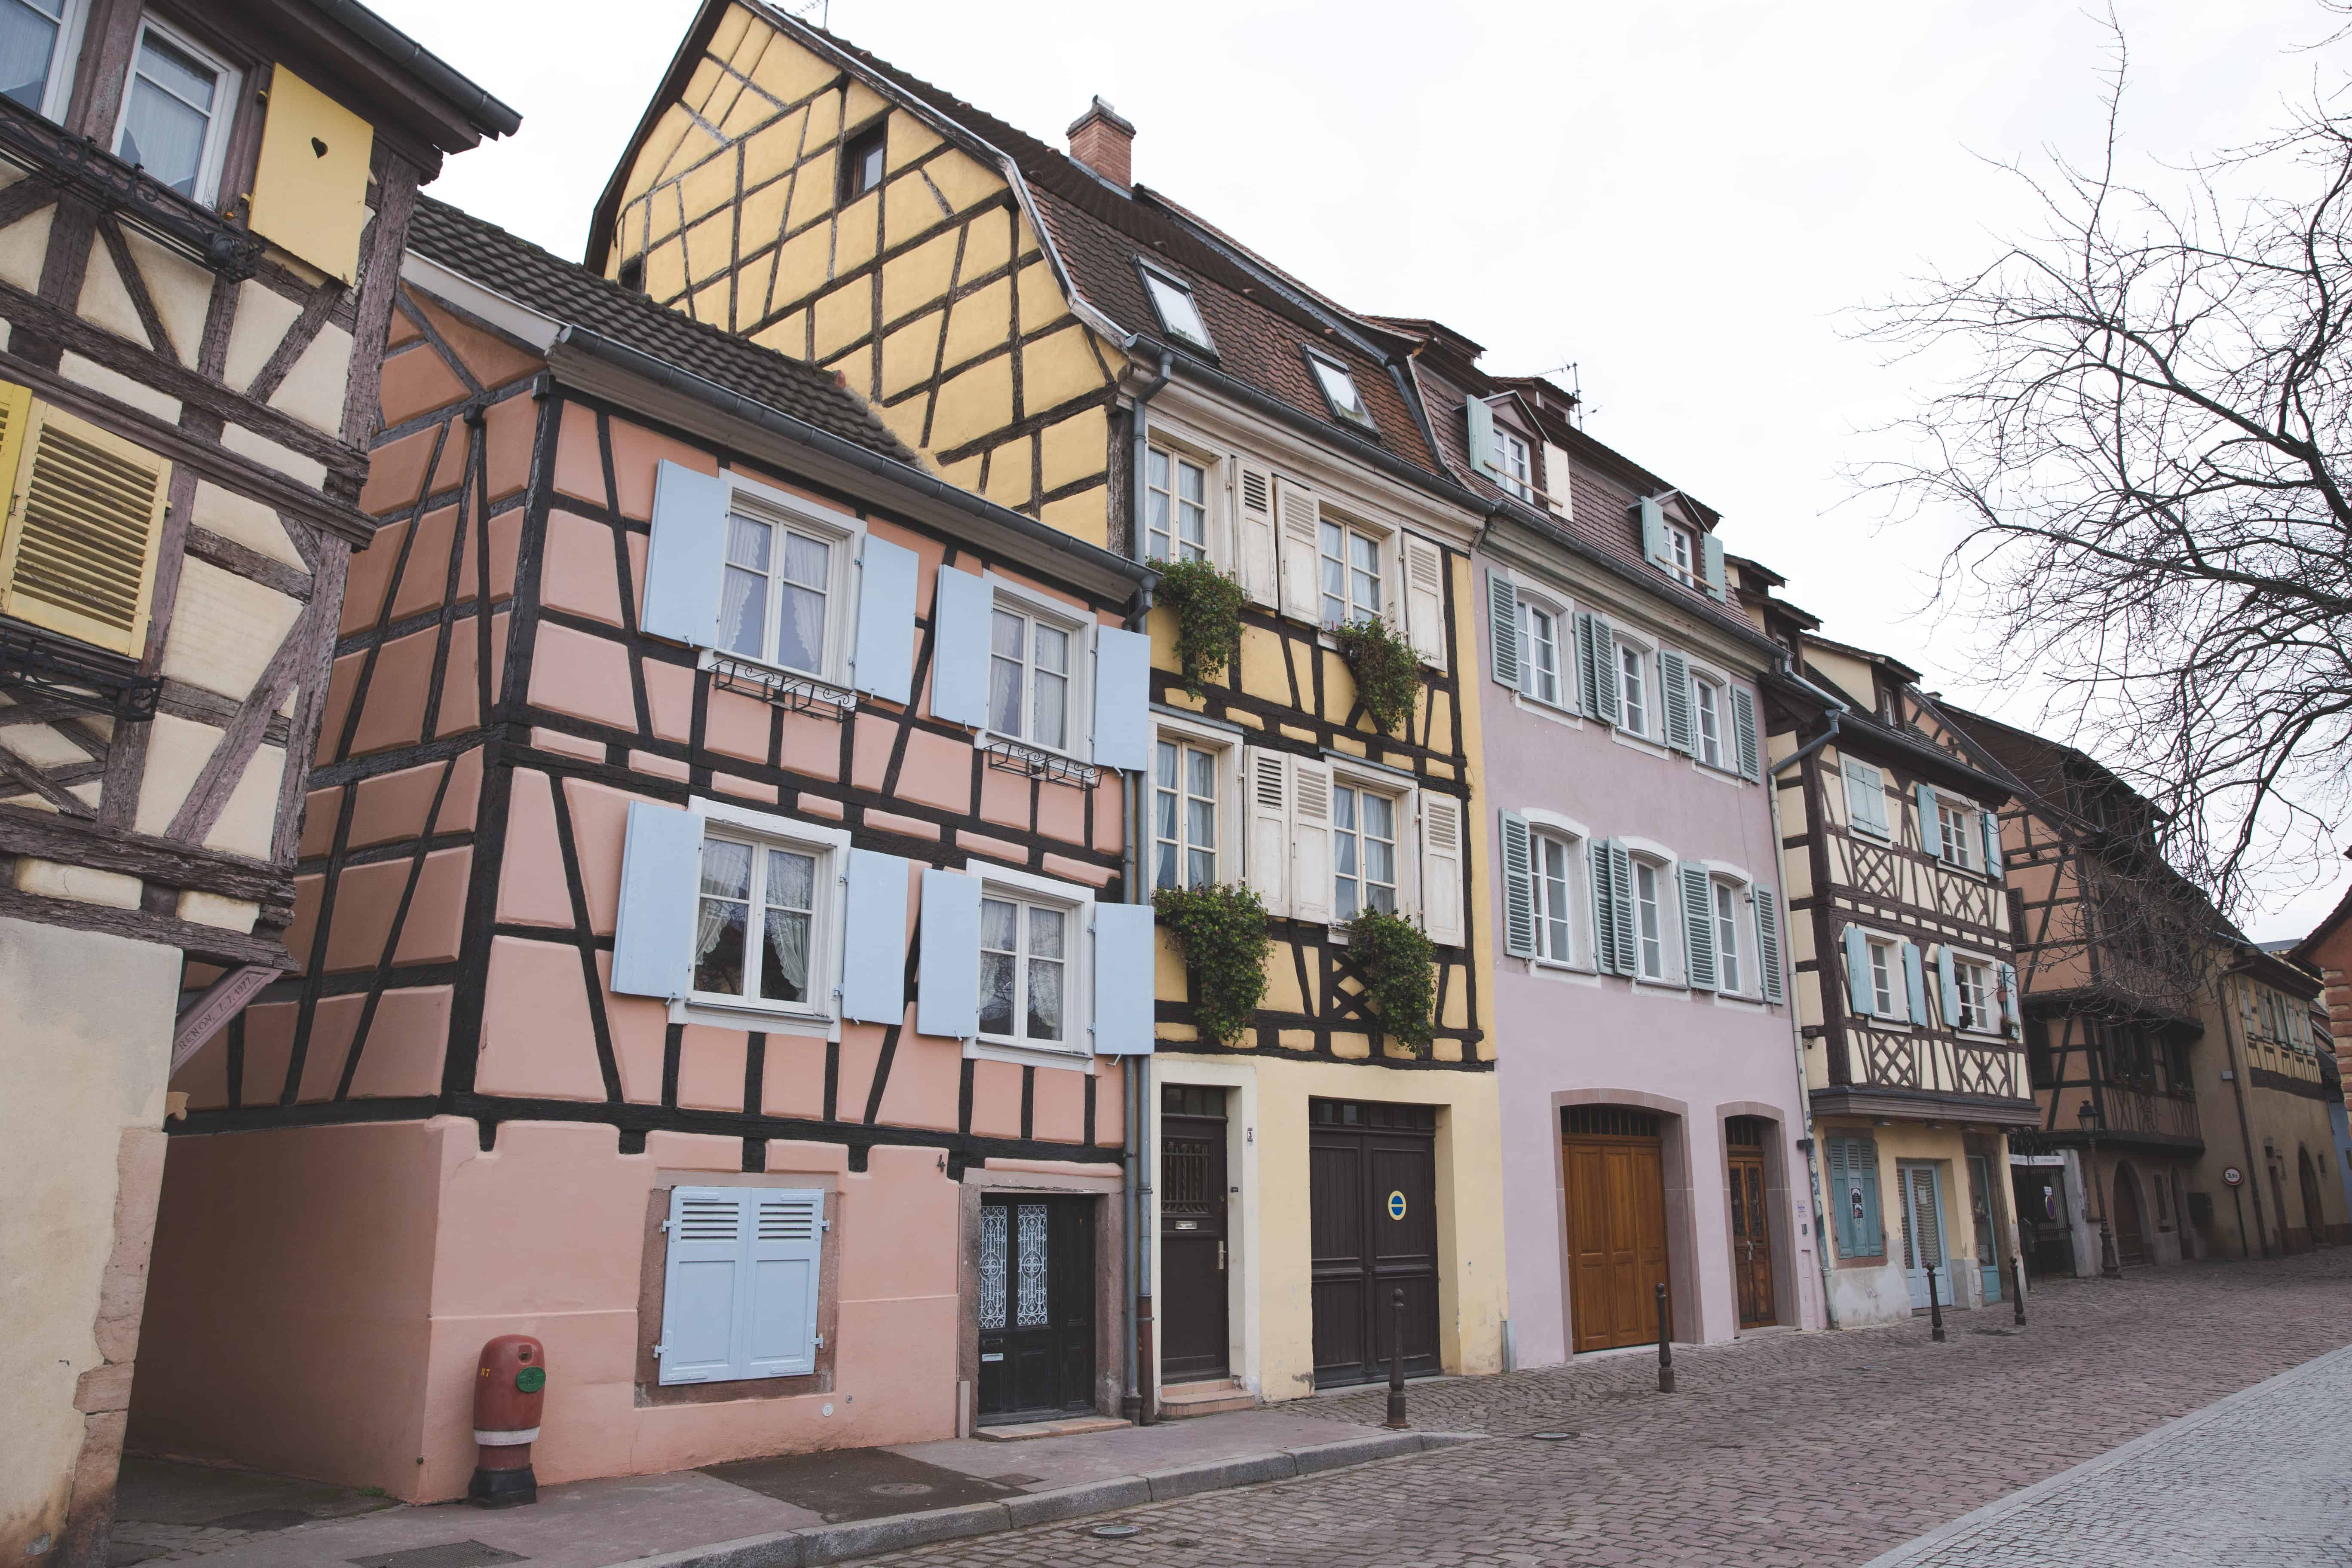 Colmar is an easy day trip from Basel, Switzerland